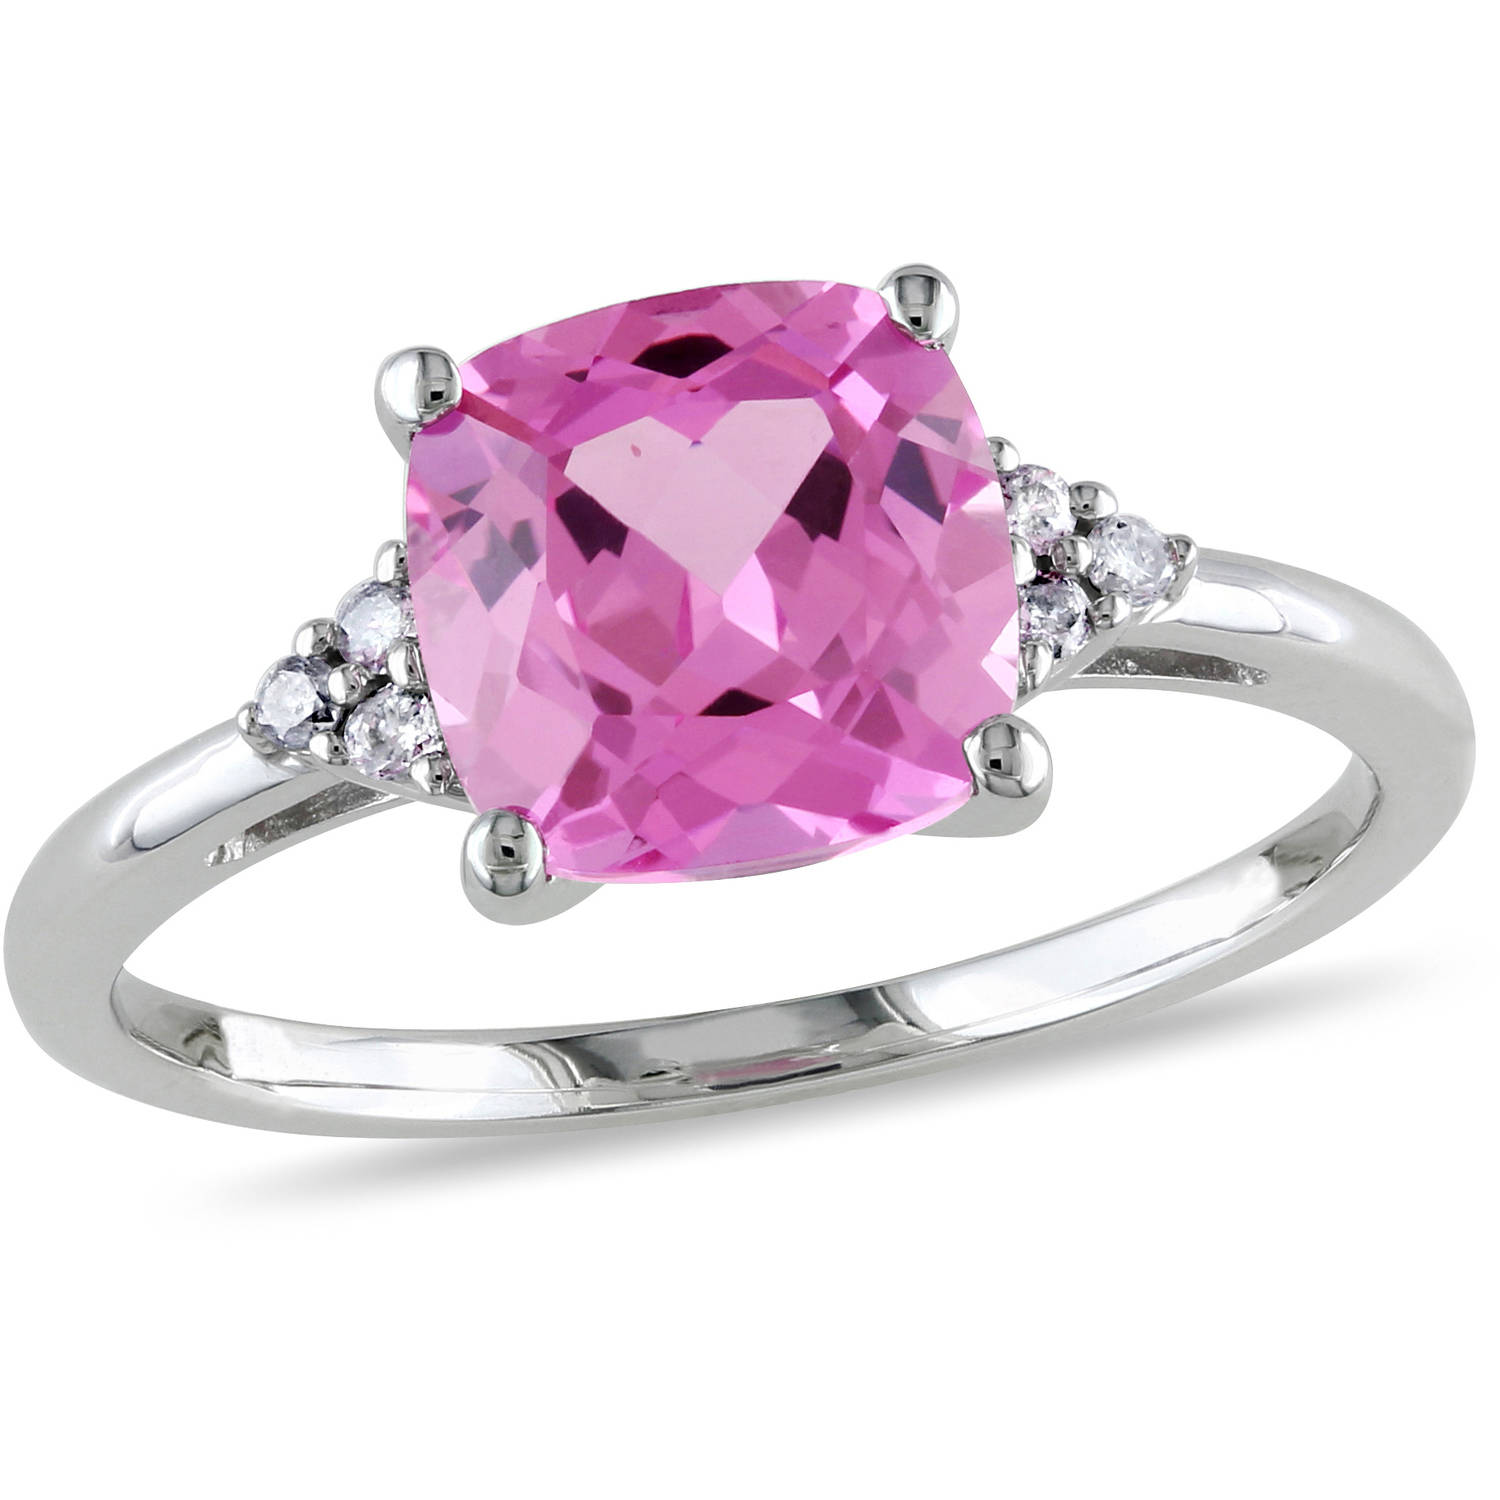 2-3 4 Carat T.G.W. Cushion-Cut Created Pink Sapphire and Diamond-Accent 10kt White Gold Cocktail Ring by Delmar Manufacturing LLC